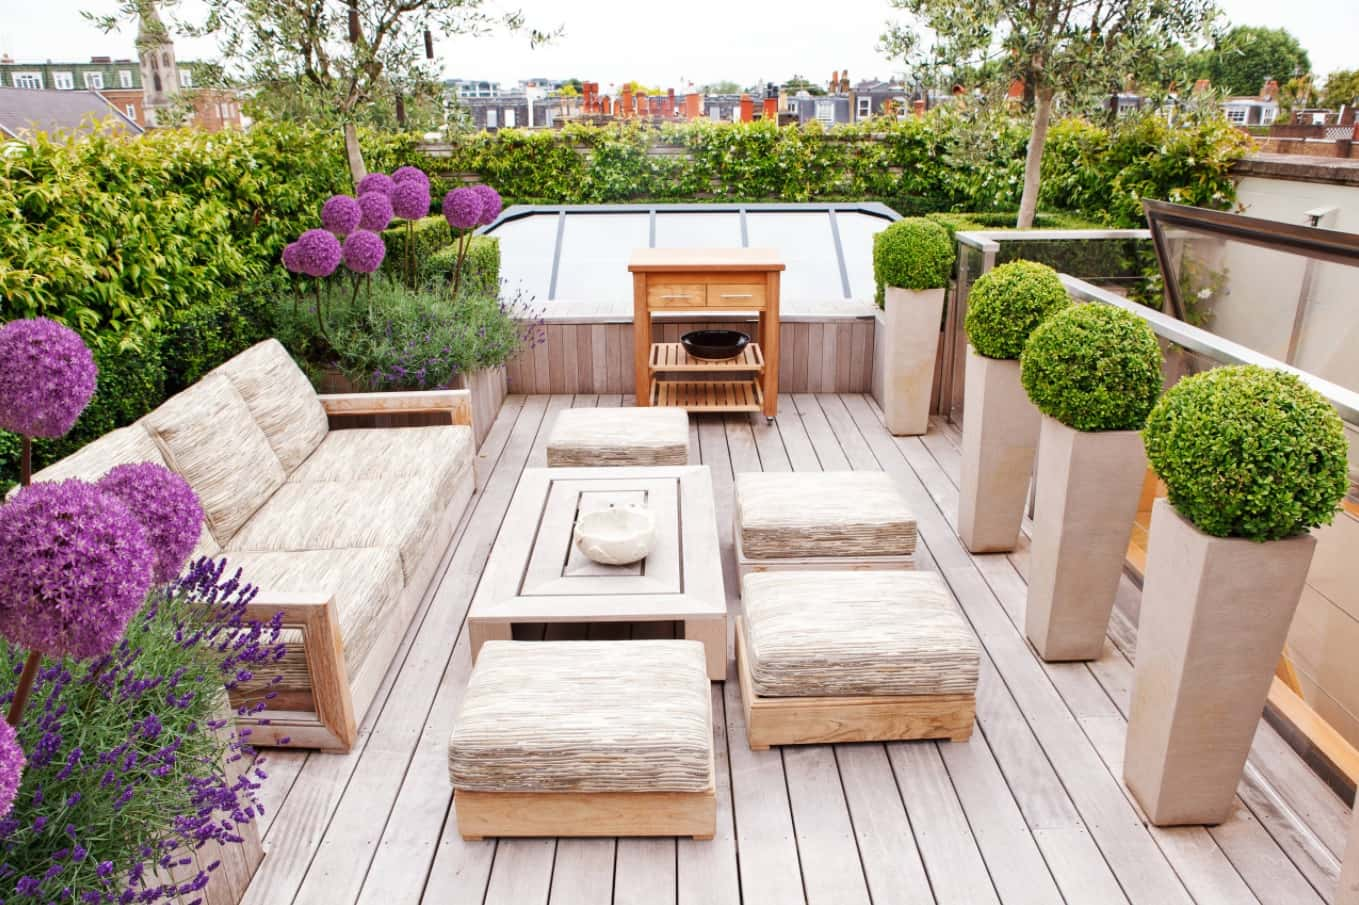 Top Tips for Designing Your Patio. Modern design with wooden coffee table and bonsai flowers in high concrete vases